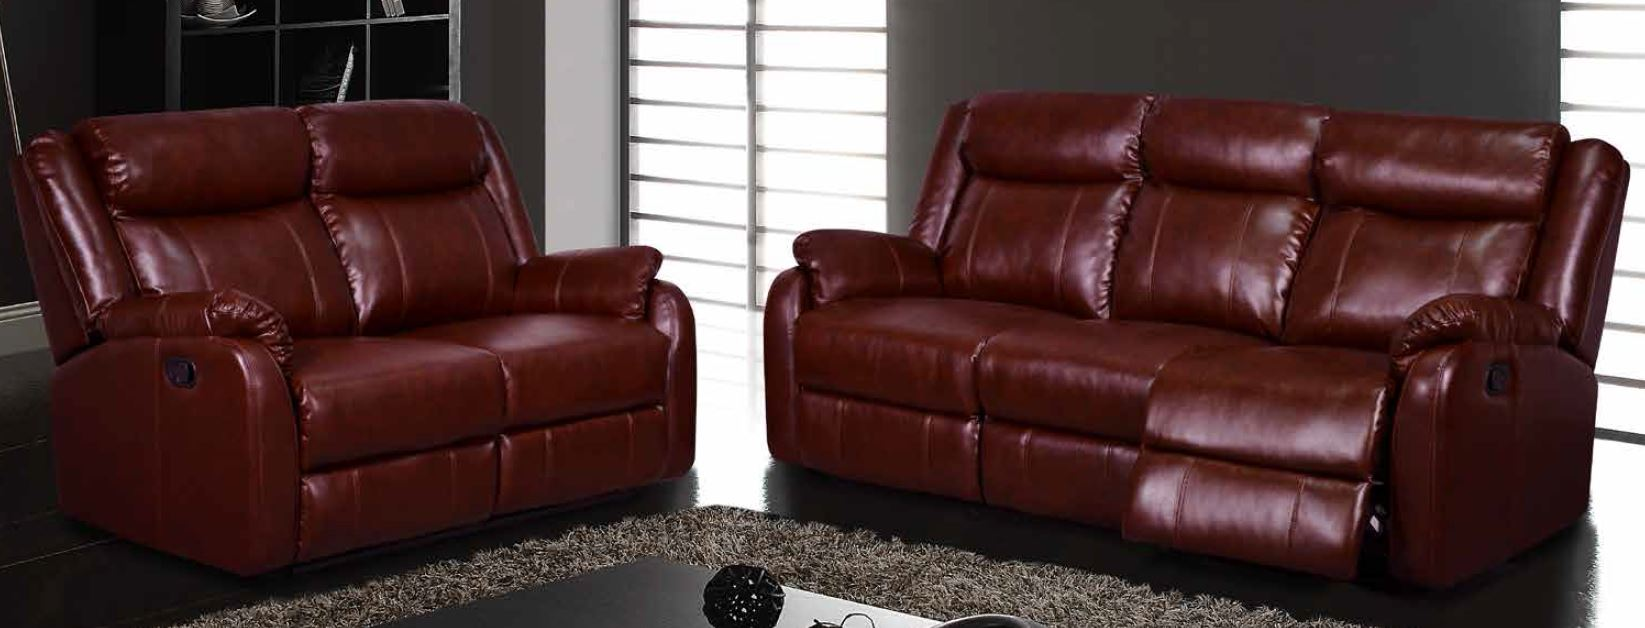 Burgundy Sofa And Loveseat Modern Burgundy Leather